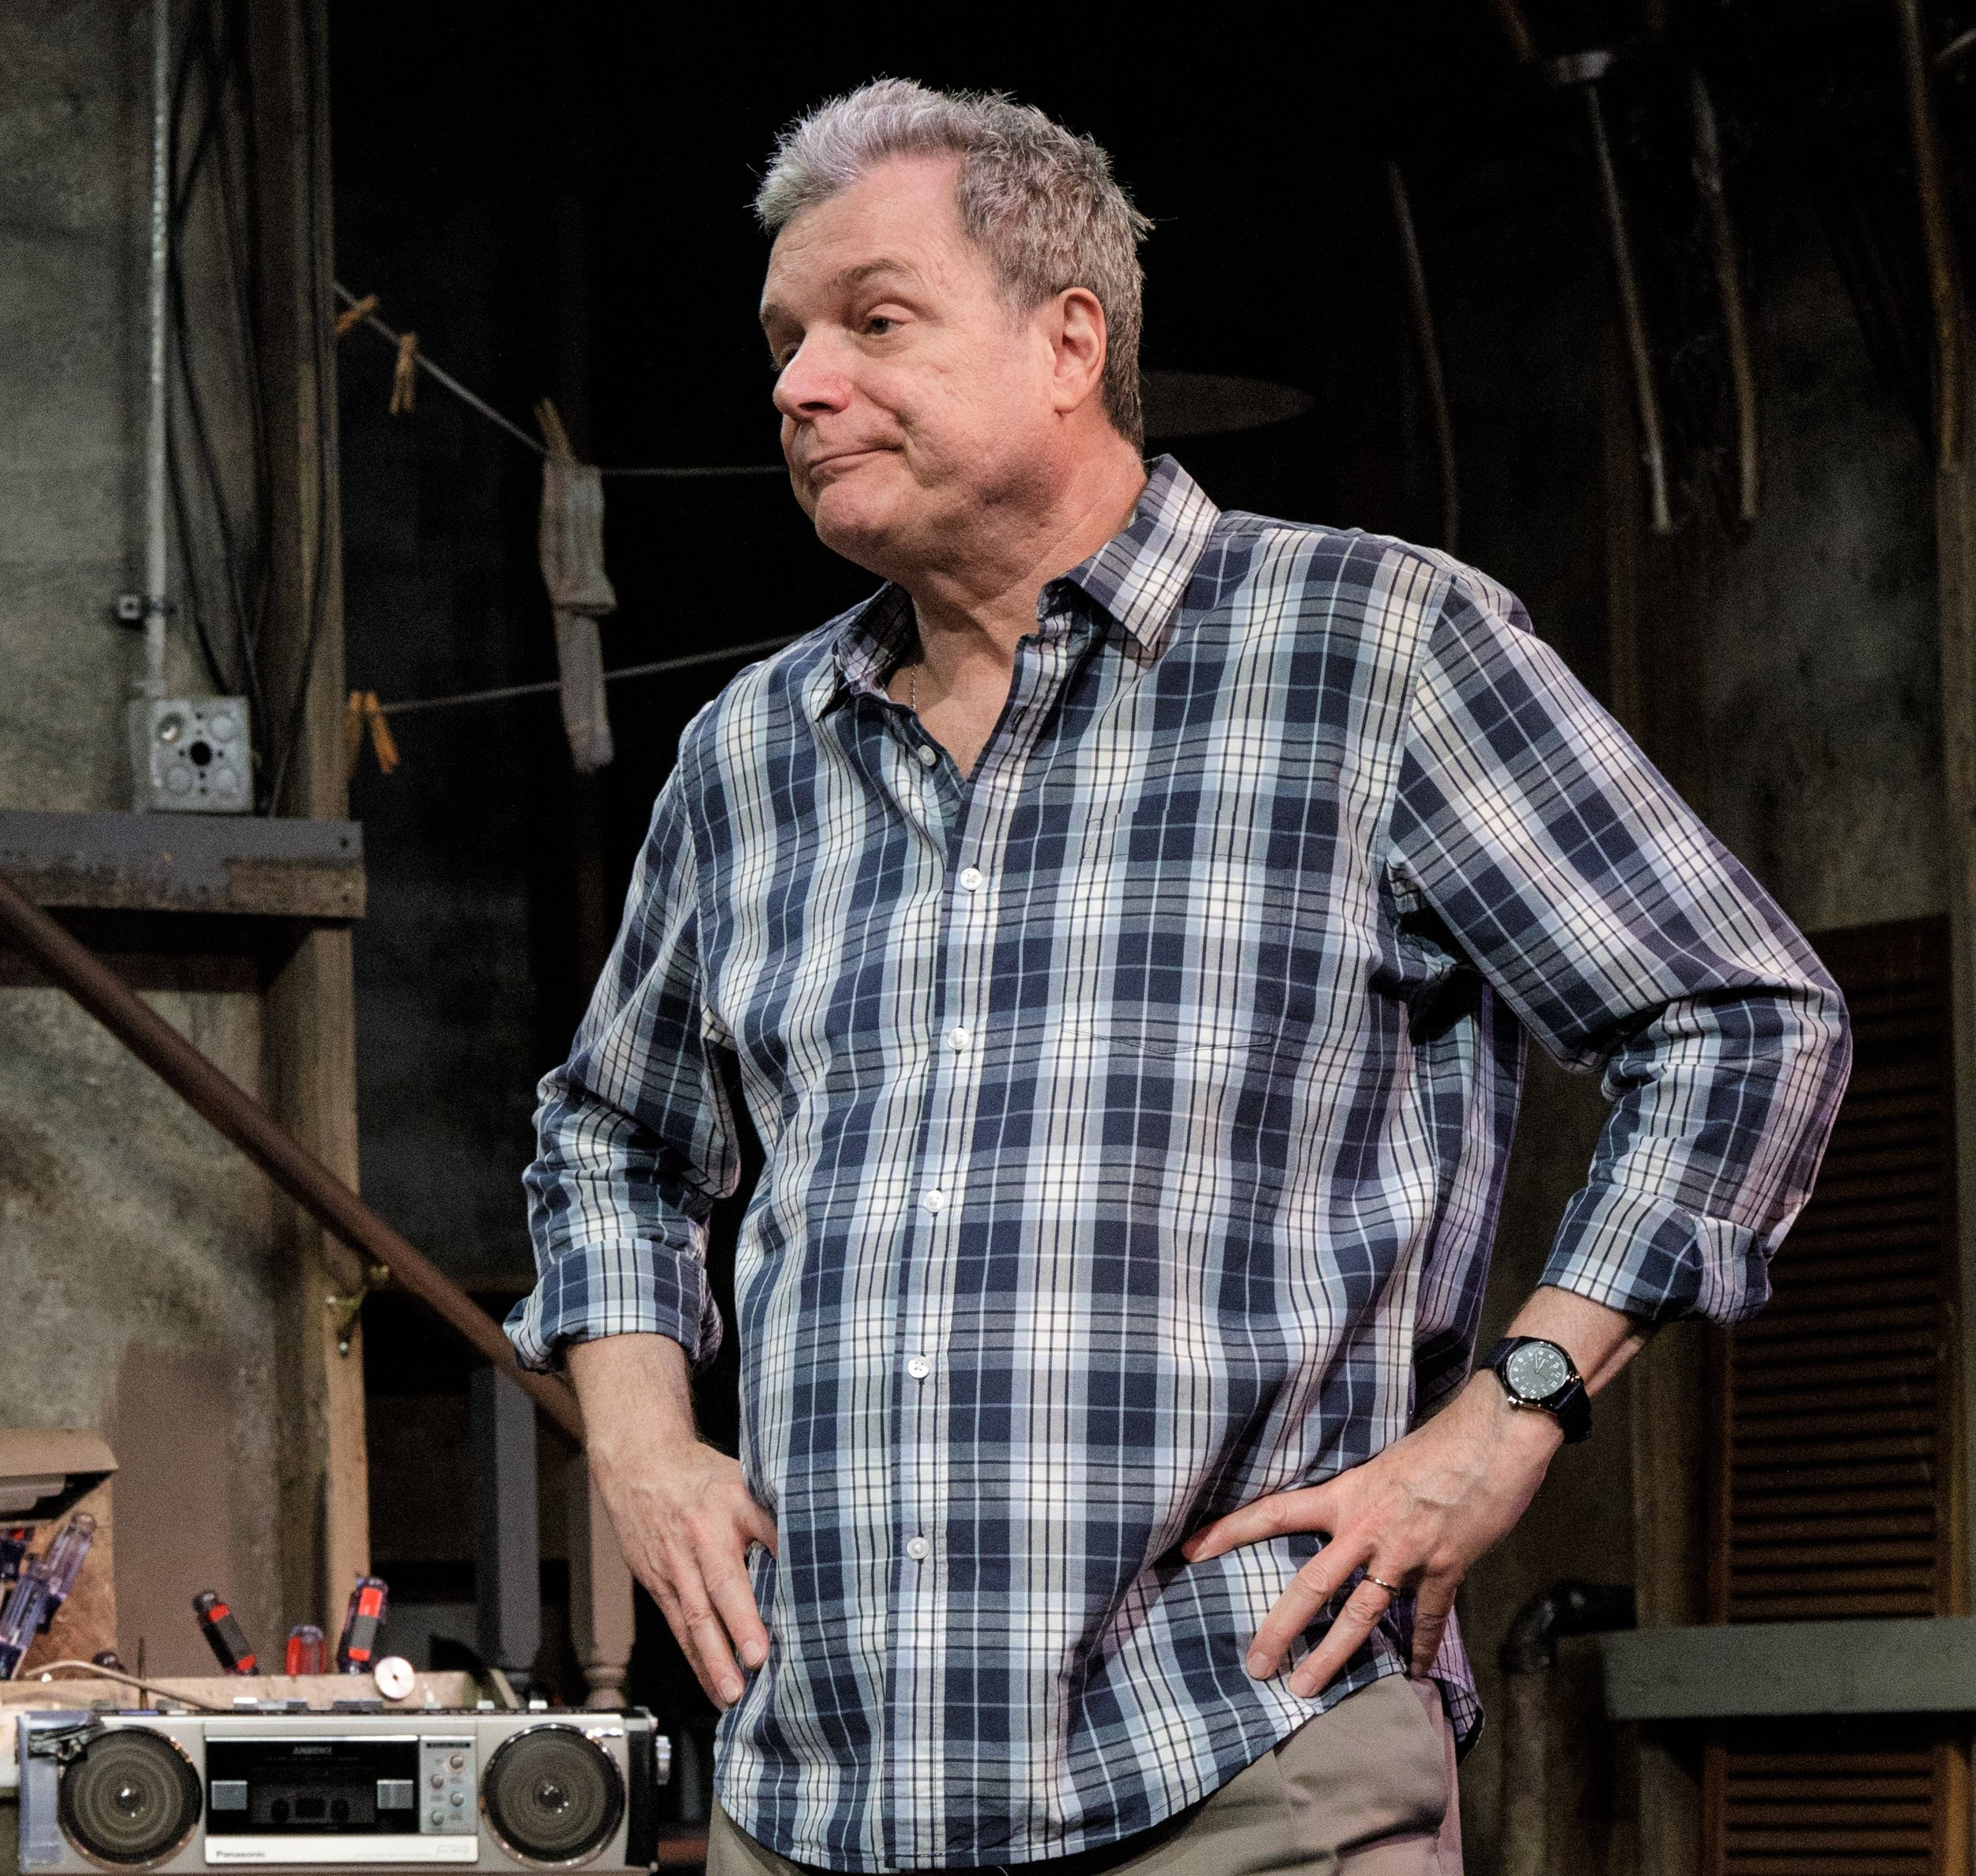 John Procaccino plays Gerry, the controlling husband of Irene in Theresa Rebeck's  Downstairs.  Top: Real siblings Tyne Daly and Tim Daly are Irene and Teddy, the sister and brother in Rebeck's thrilling family drama.